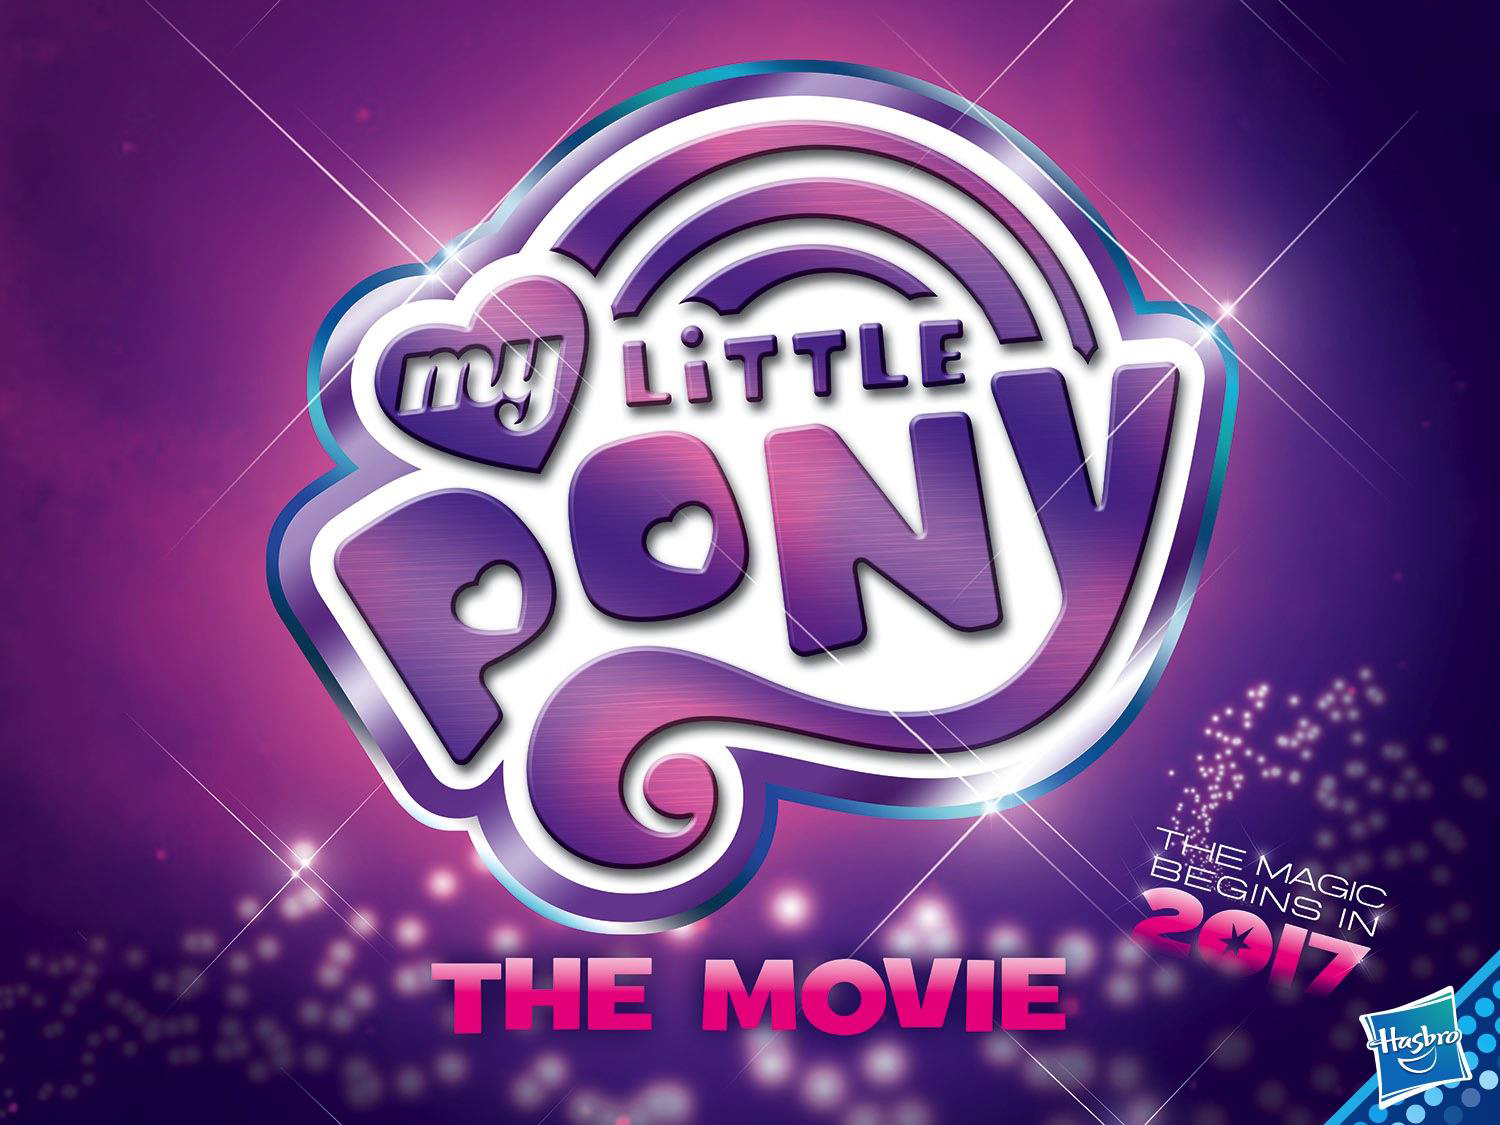 MLP_The_Movie_promotional_logo_Sabor